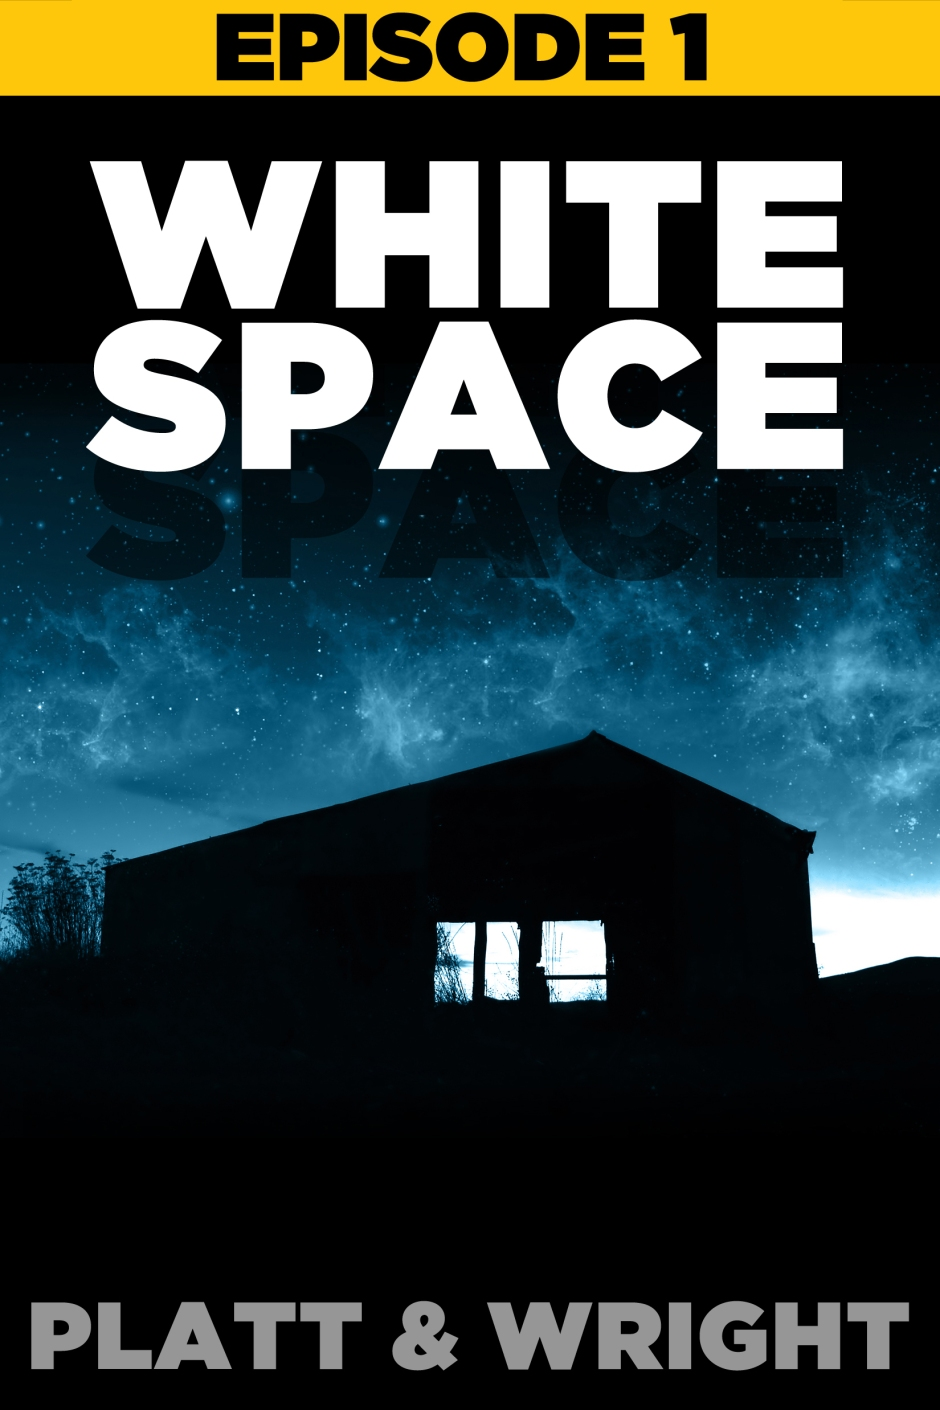 WhiteSpace Episode 1